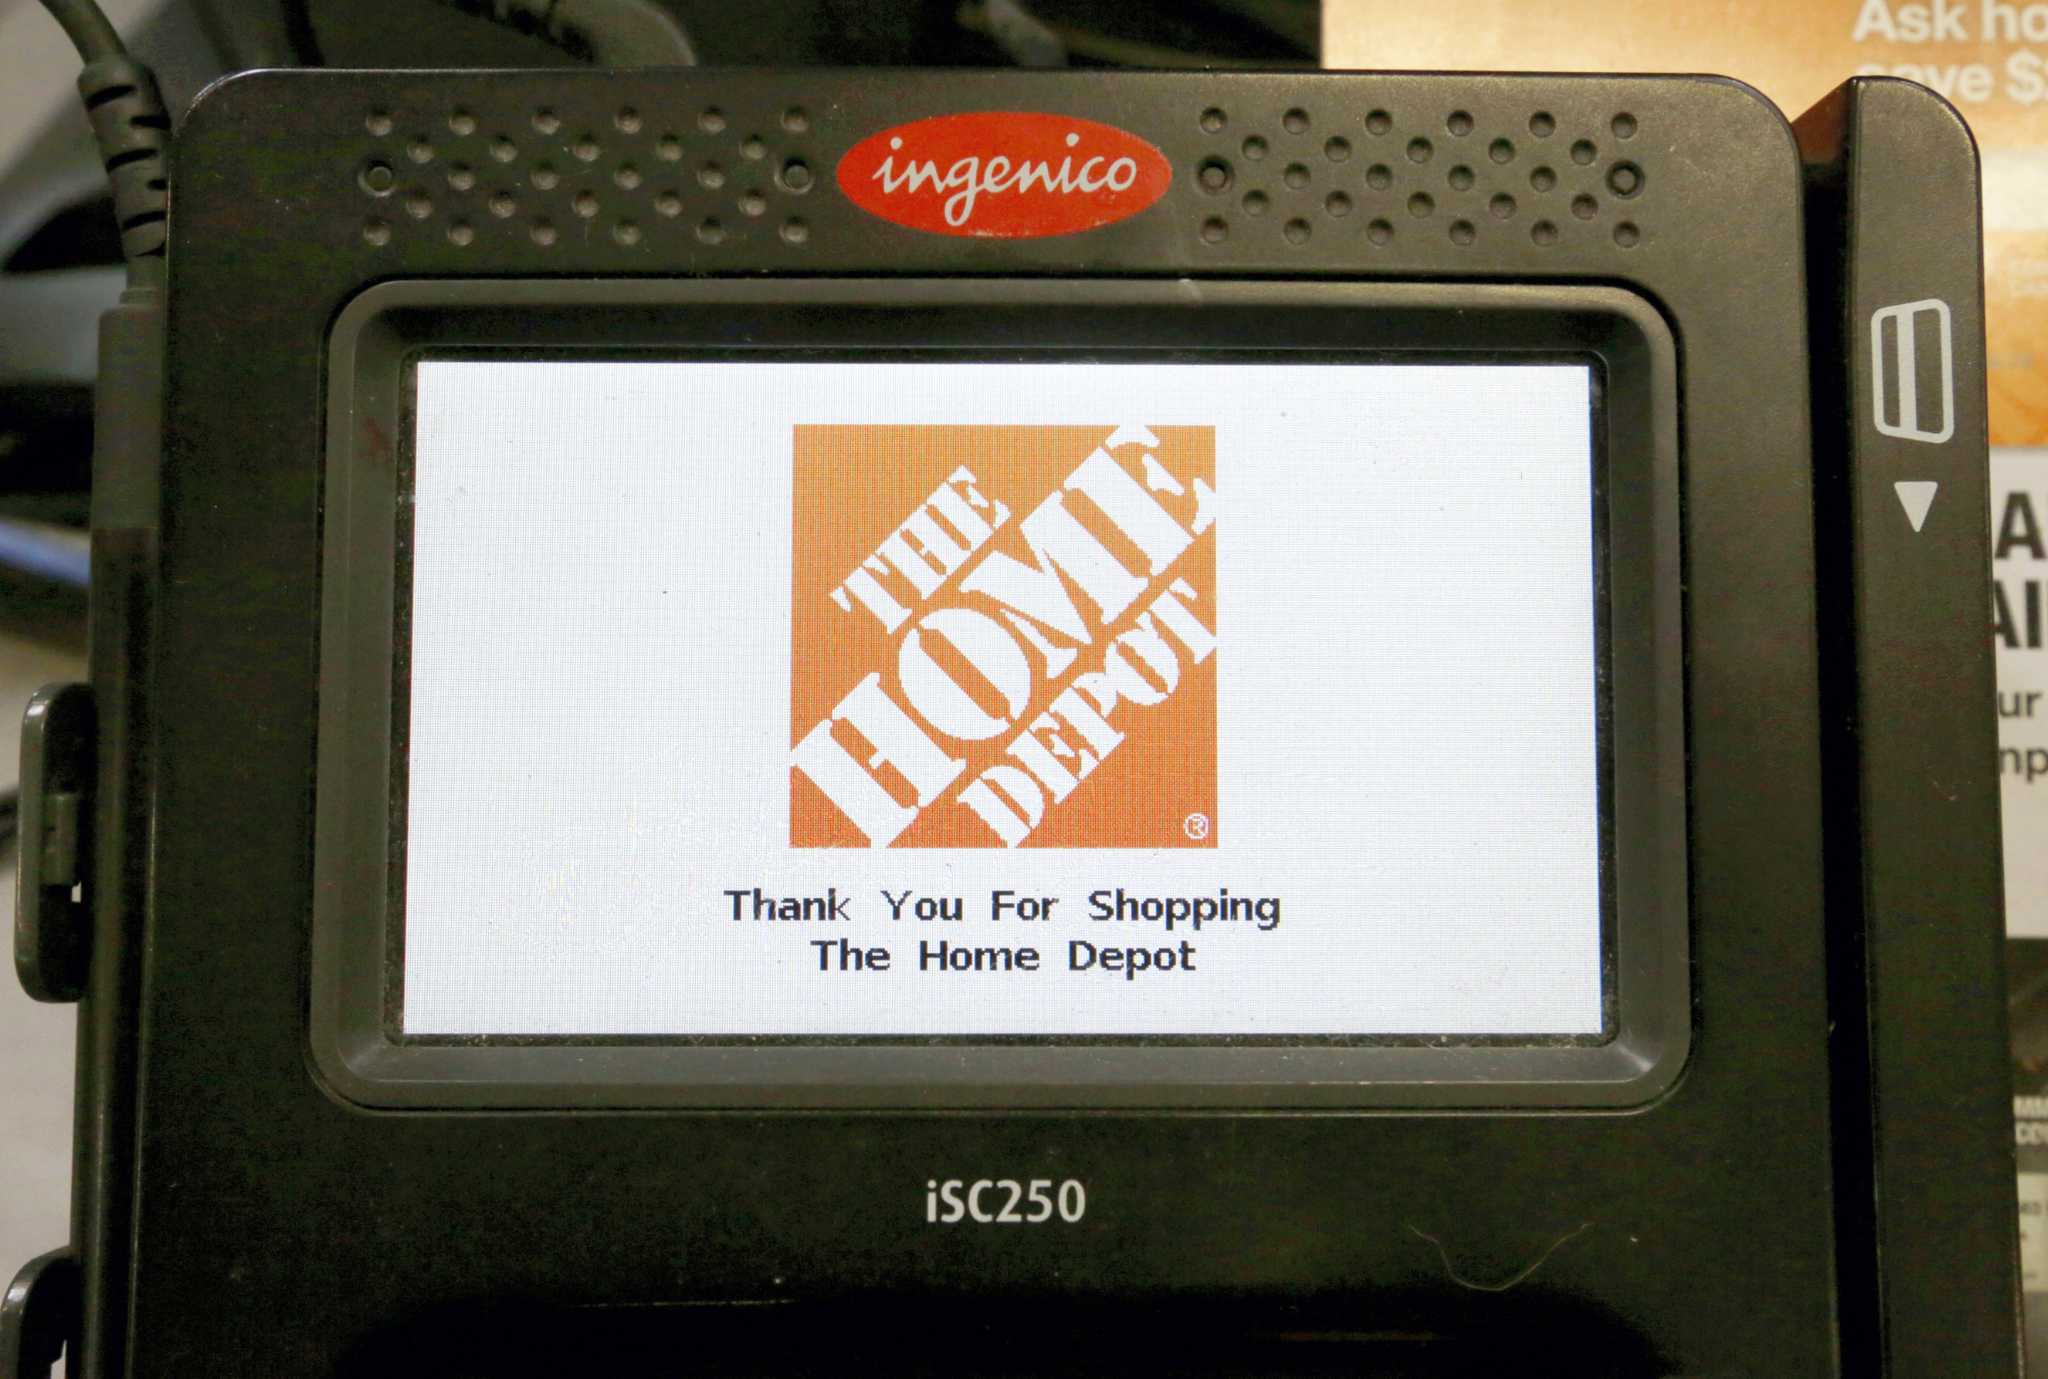 Connecticut man charged in return scam at Home Depot stores - The ...